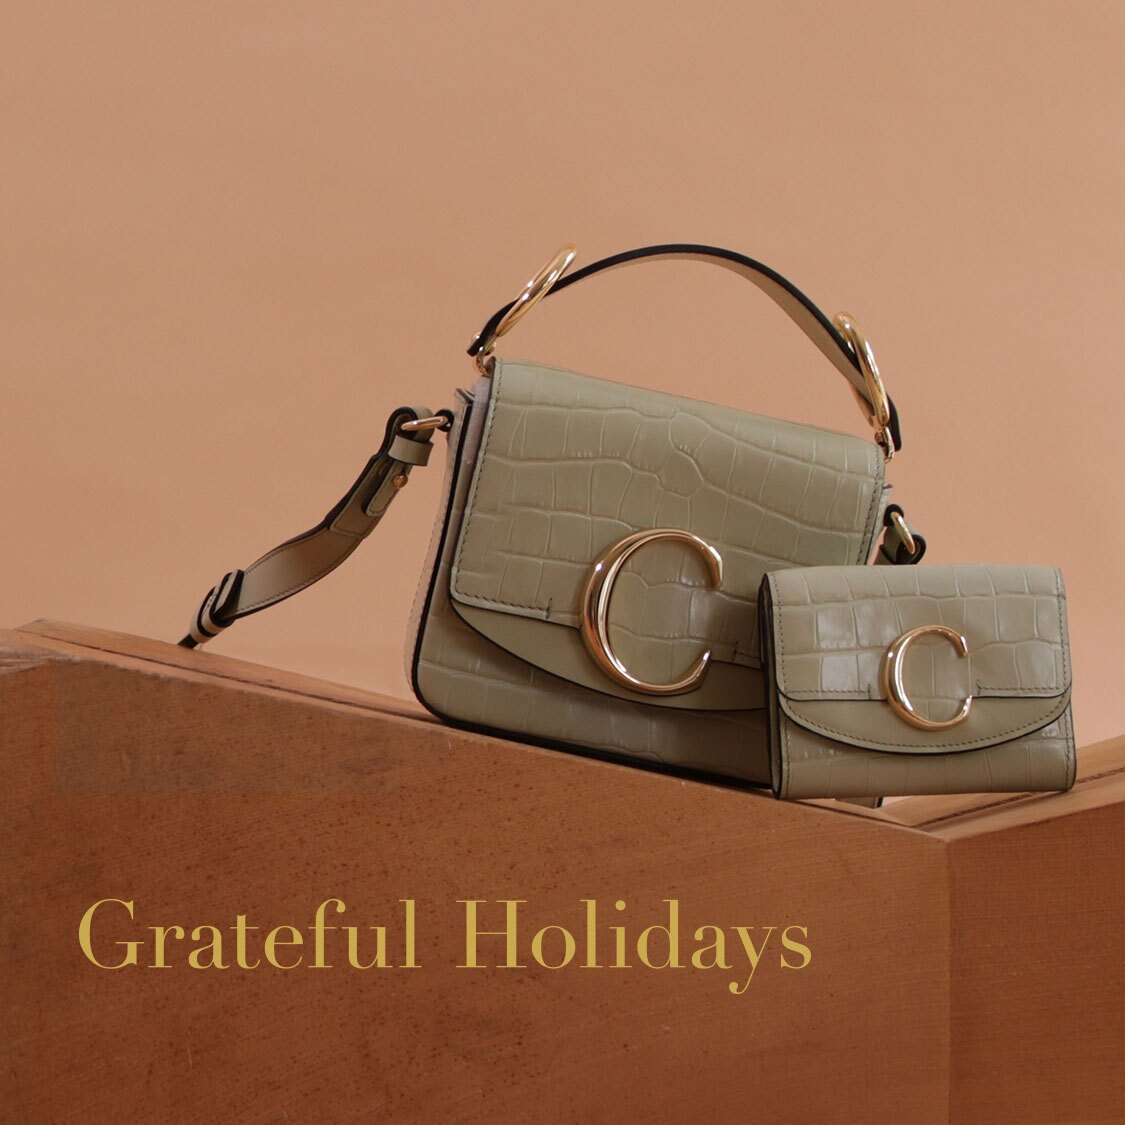 Grateful Holidays from FEATURES